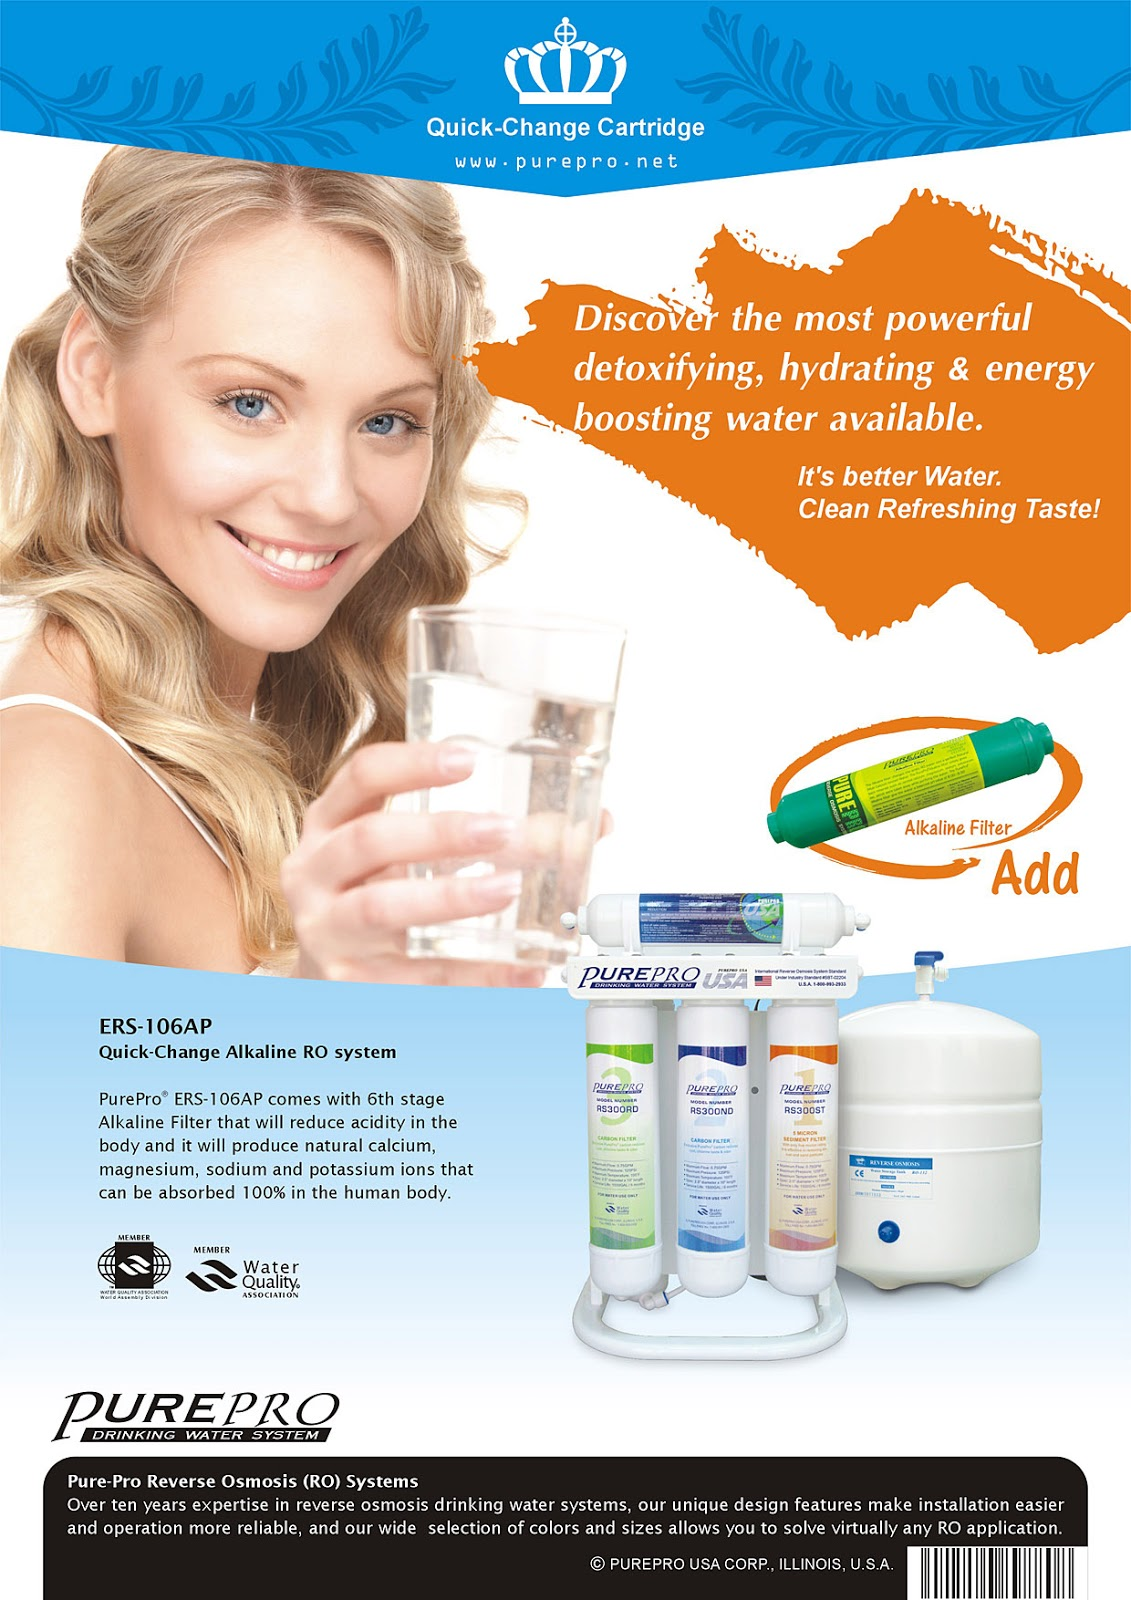 PurePro® ERS-106AP Alkaline Reverse Osmosis Water Filtration System